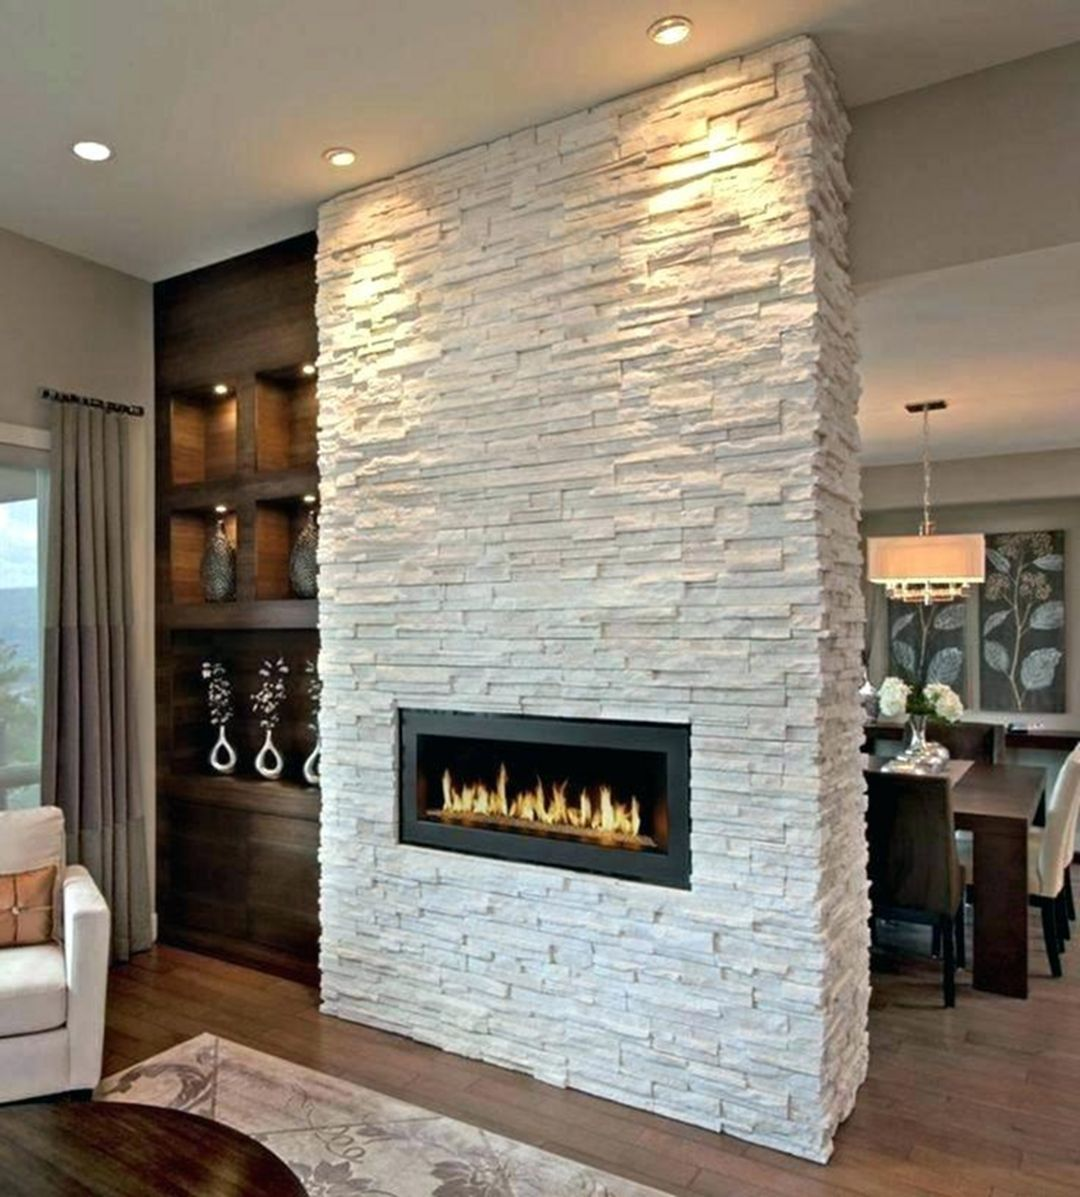 15 Awesome Wall Stone Ideas For Best Home Interior Design